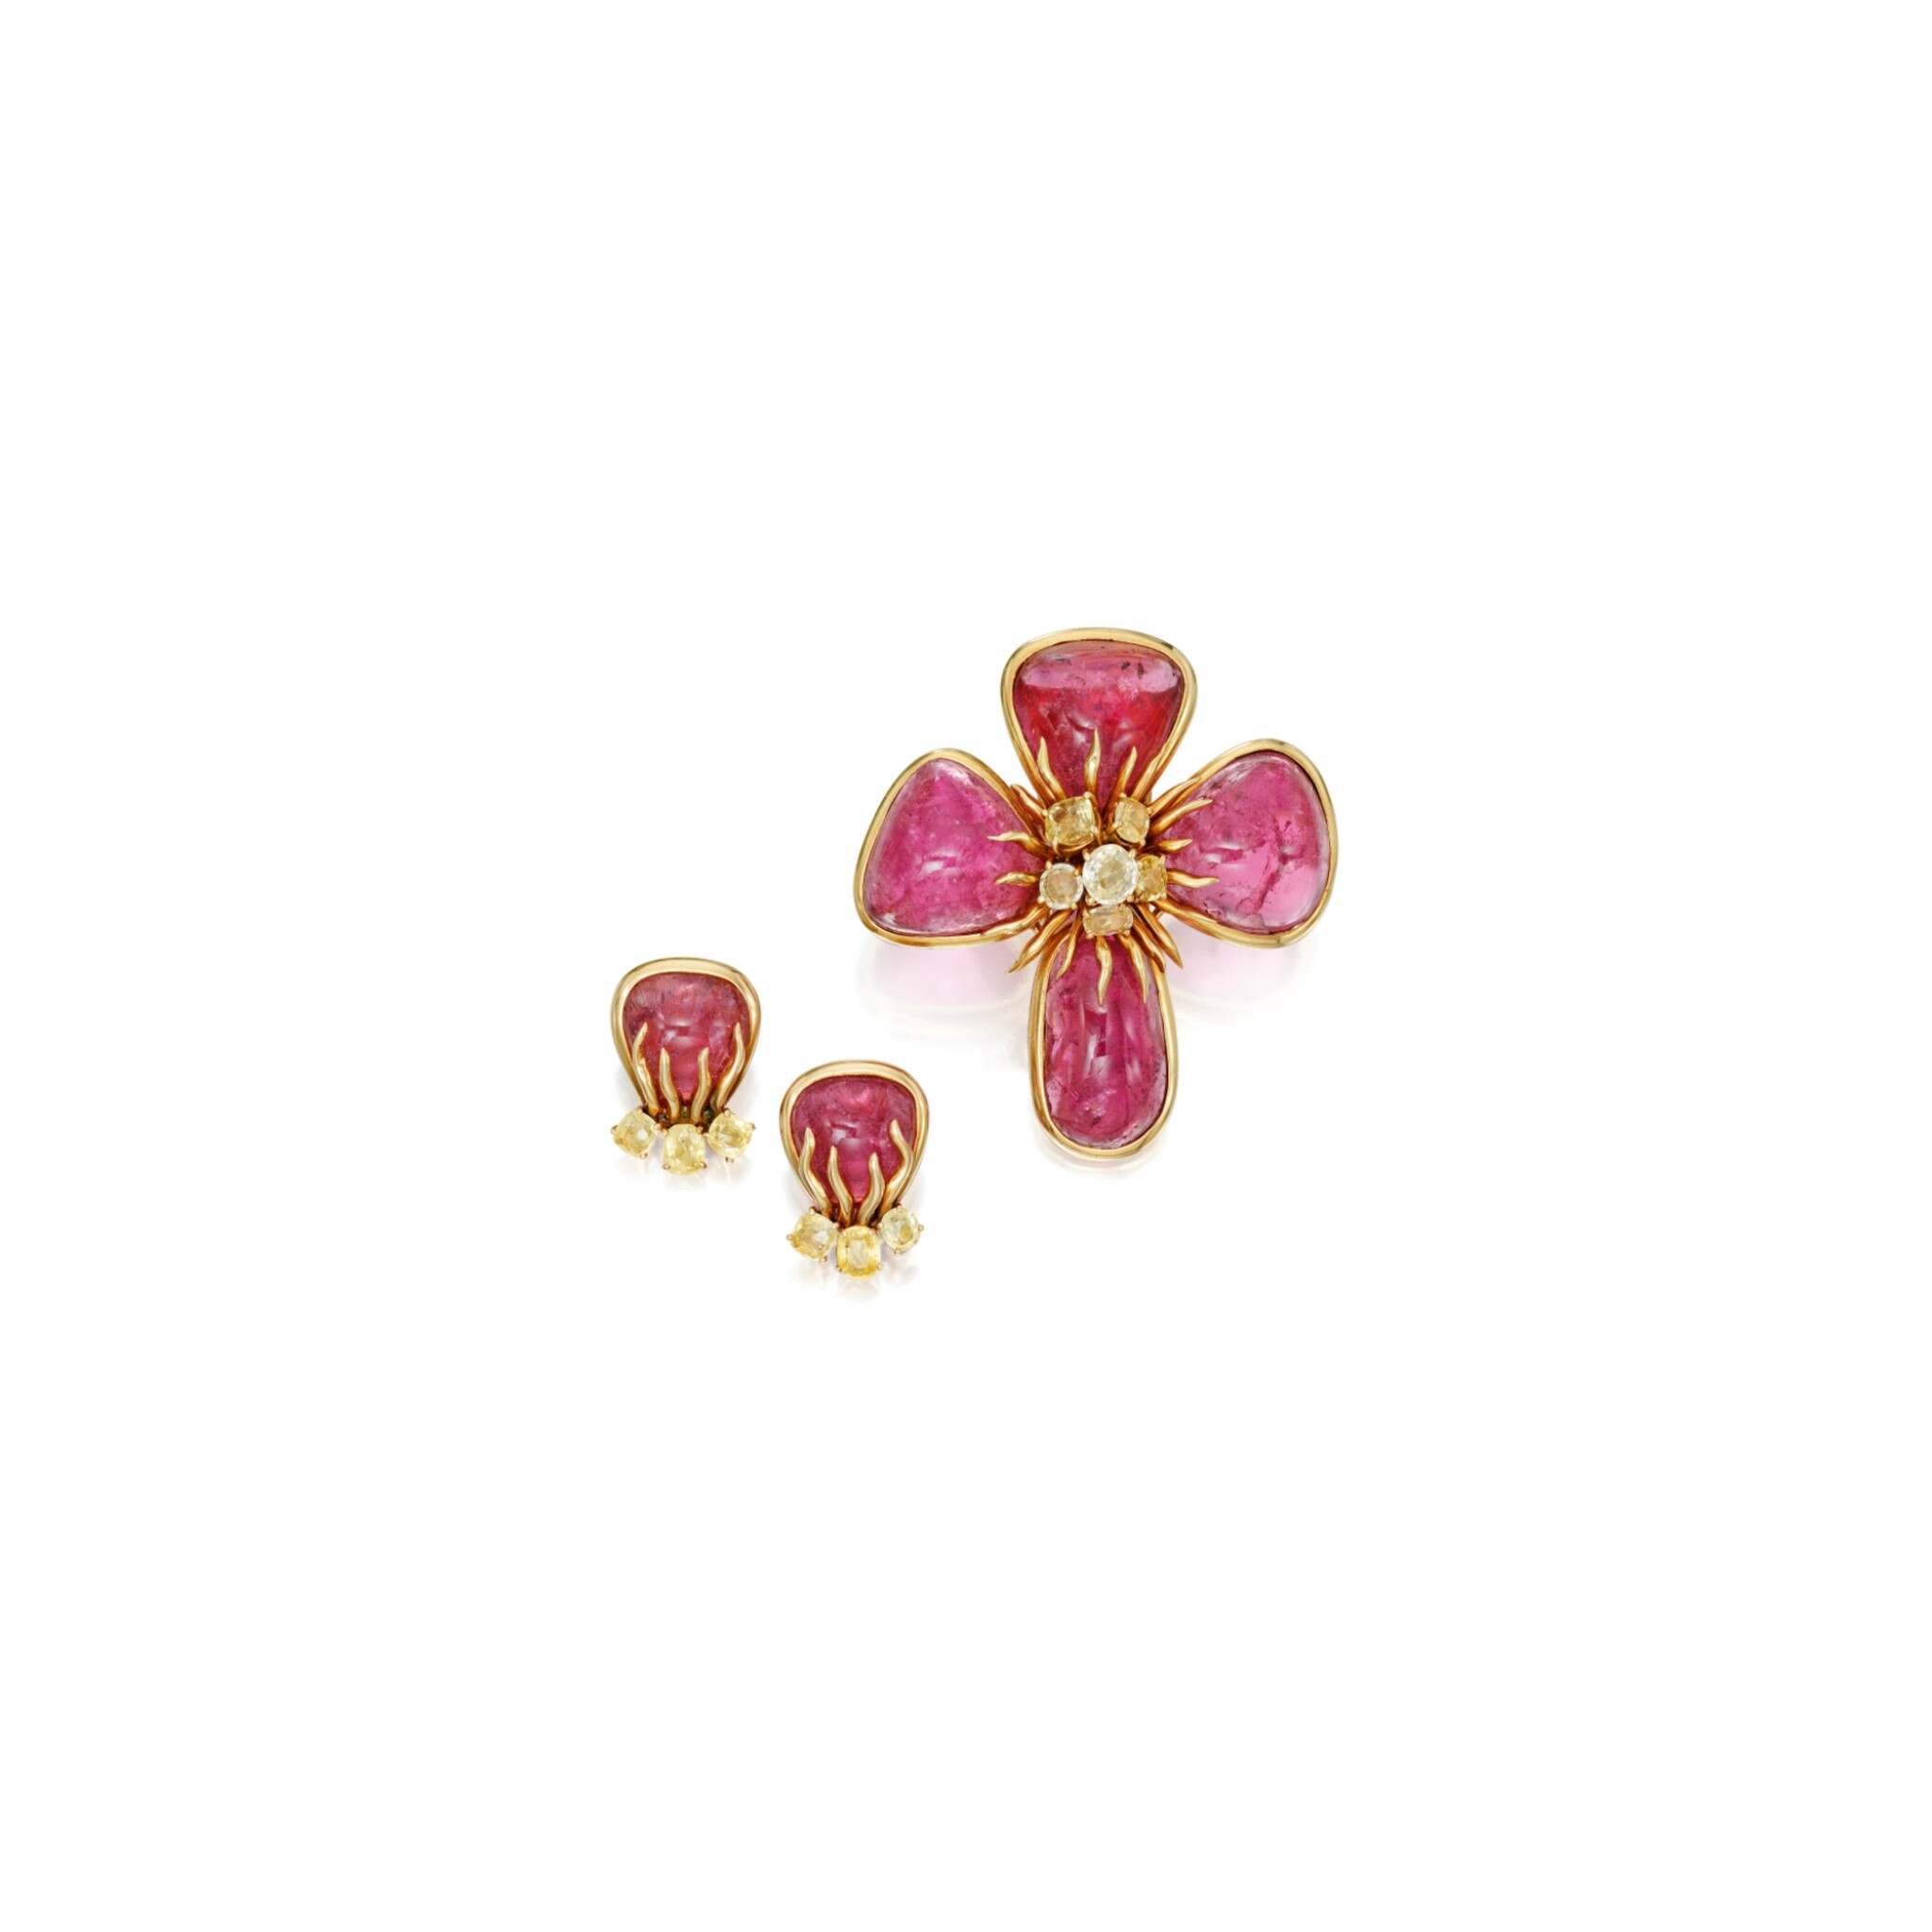 View 1 of Lot 598. PINK TOURMALINE AND YELLOW SAPPHIRE 'DOGWOOD' CLIP-BROOCH AND PAIR OF EARCLIPS, VERDURA | 粉紅色璧璽配黃色剛玉「Dogwood」別針及耳環一對,Verdura.